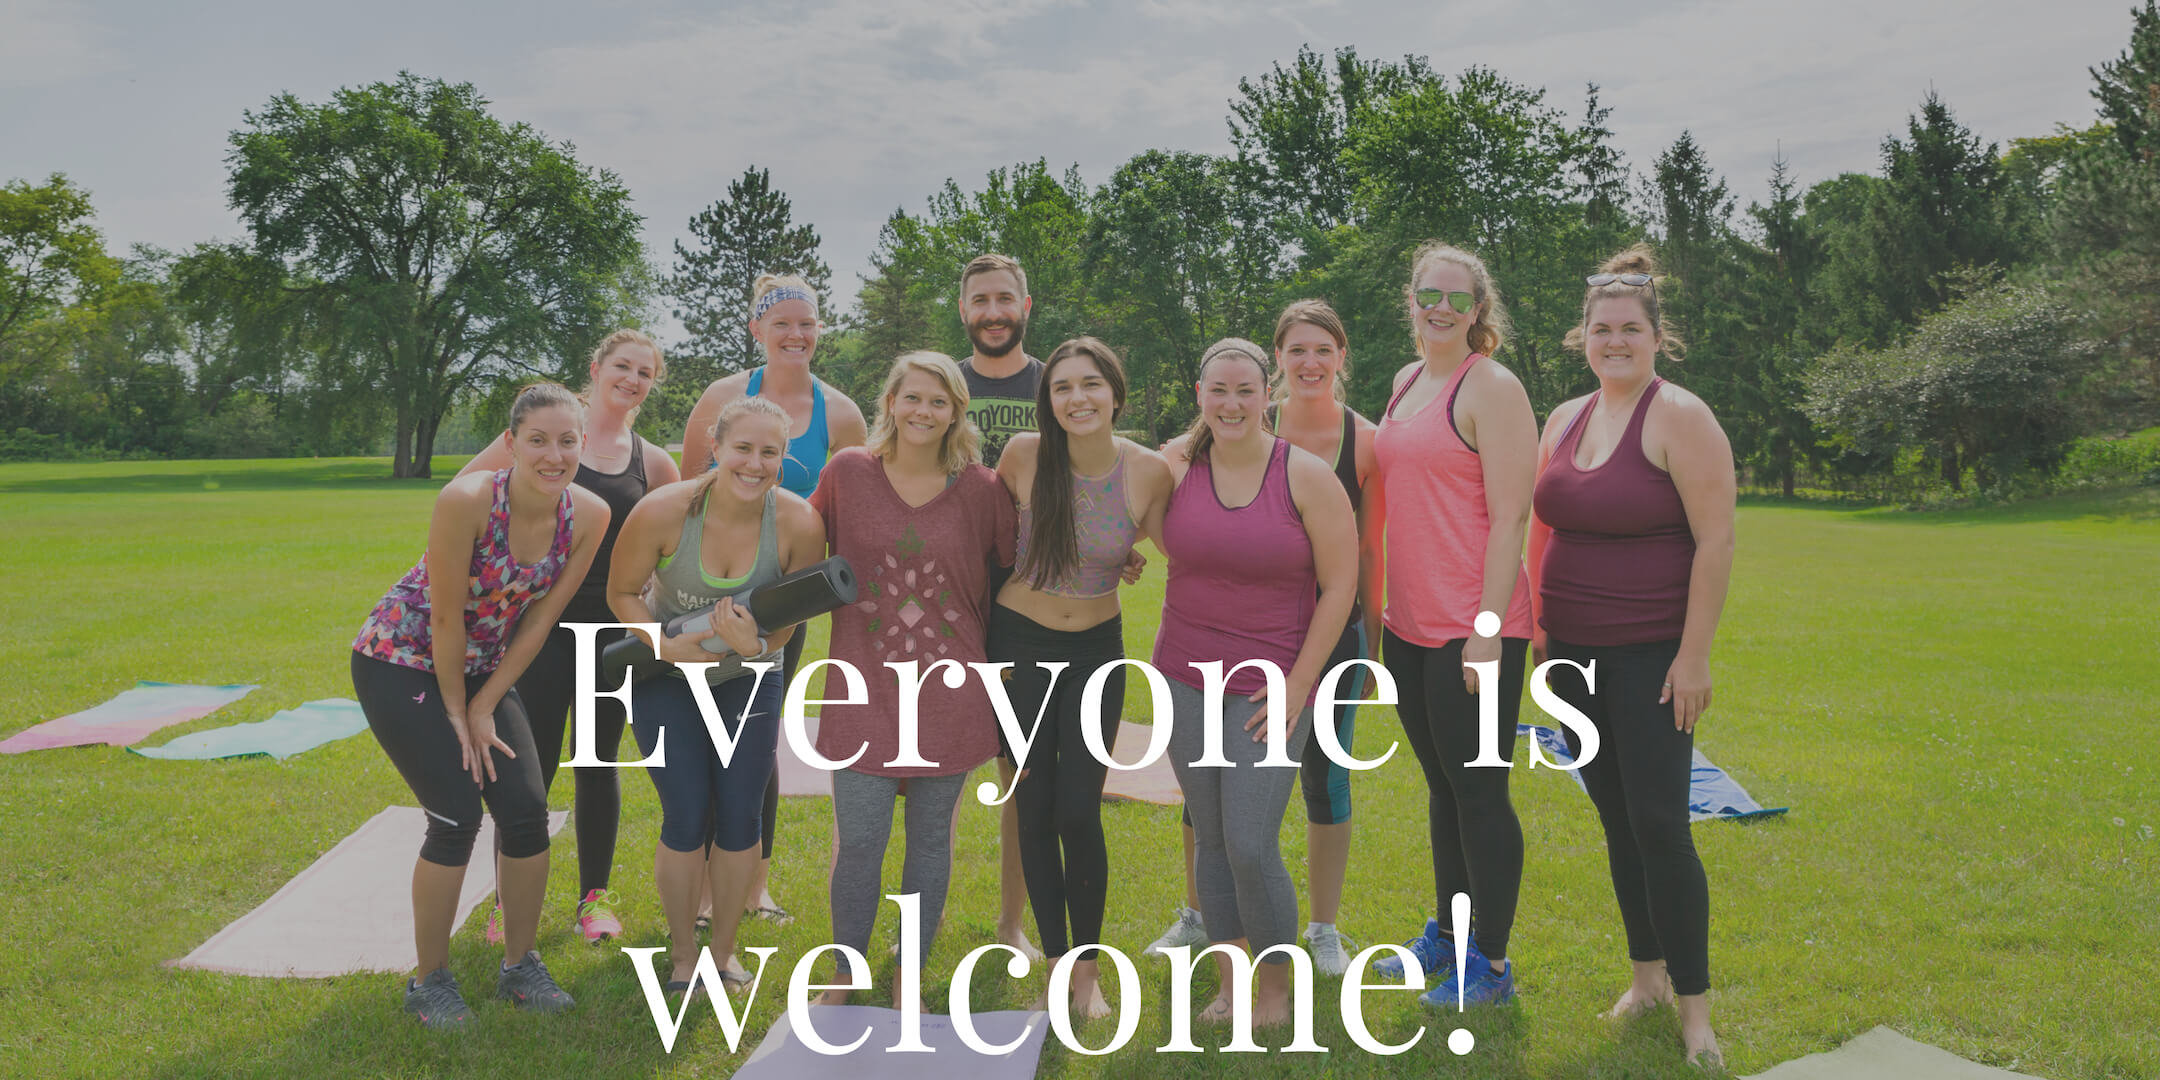 Image is of a group of yogis standing together outside.